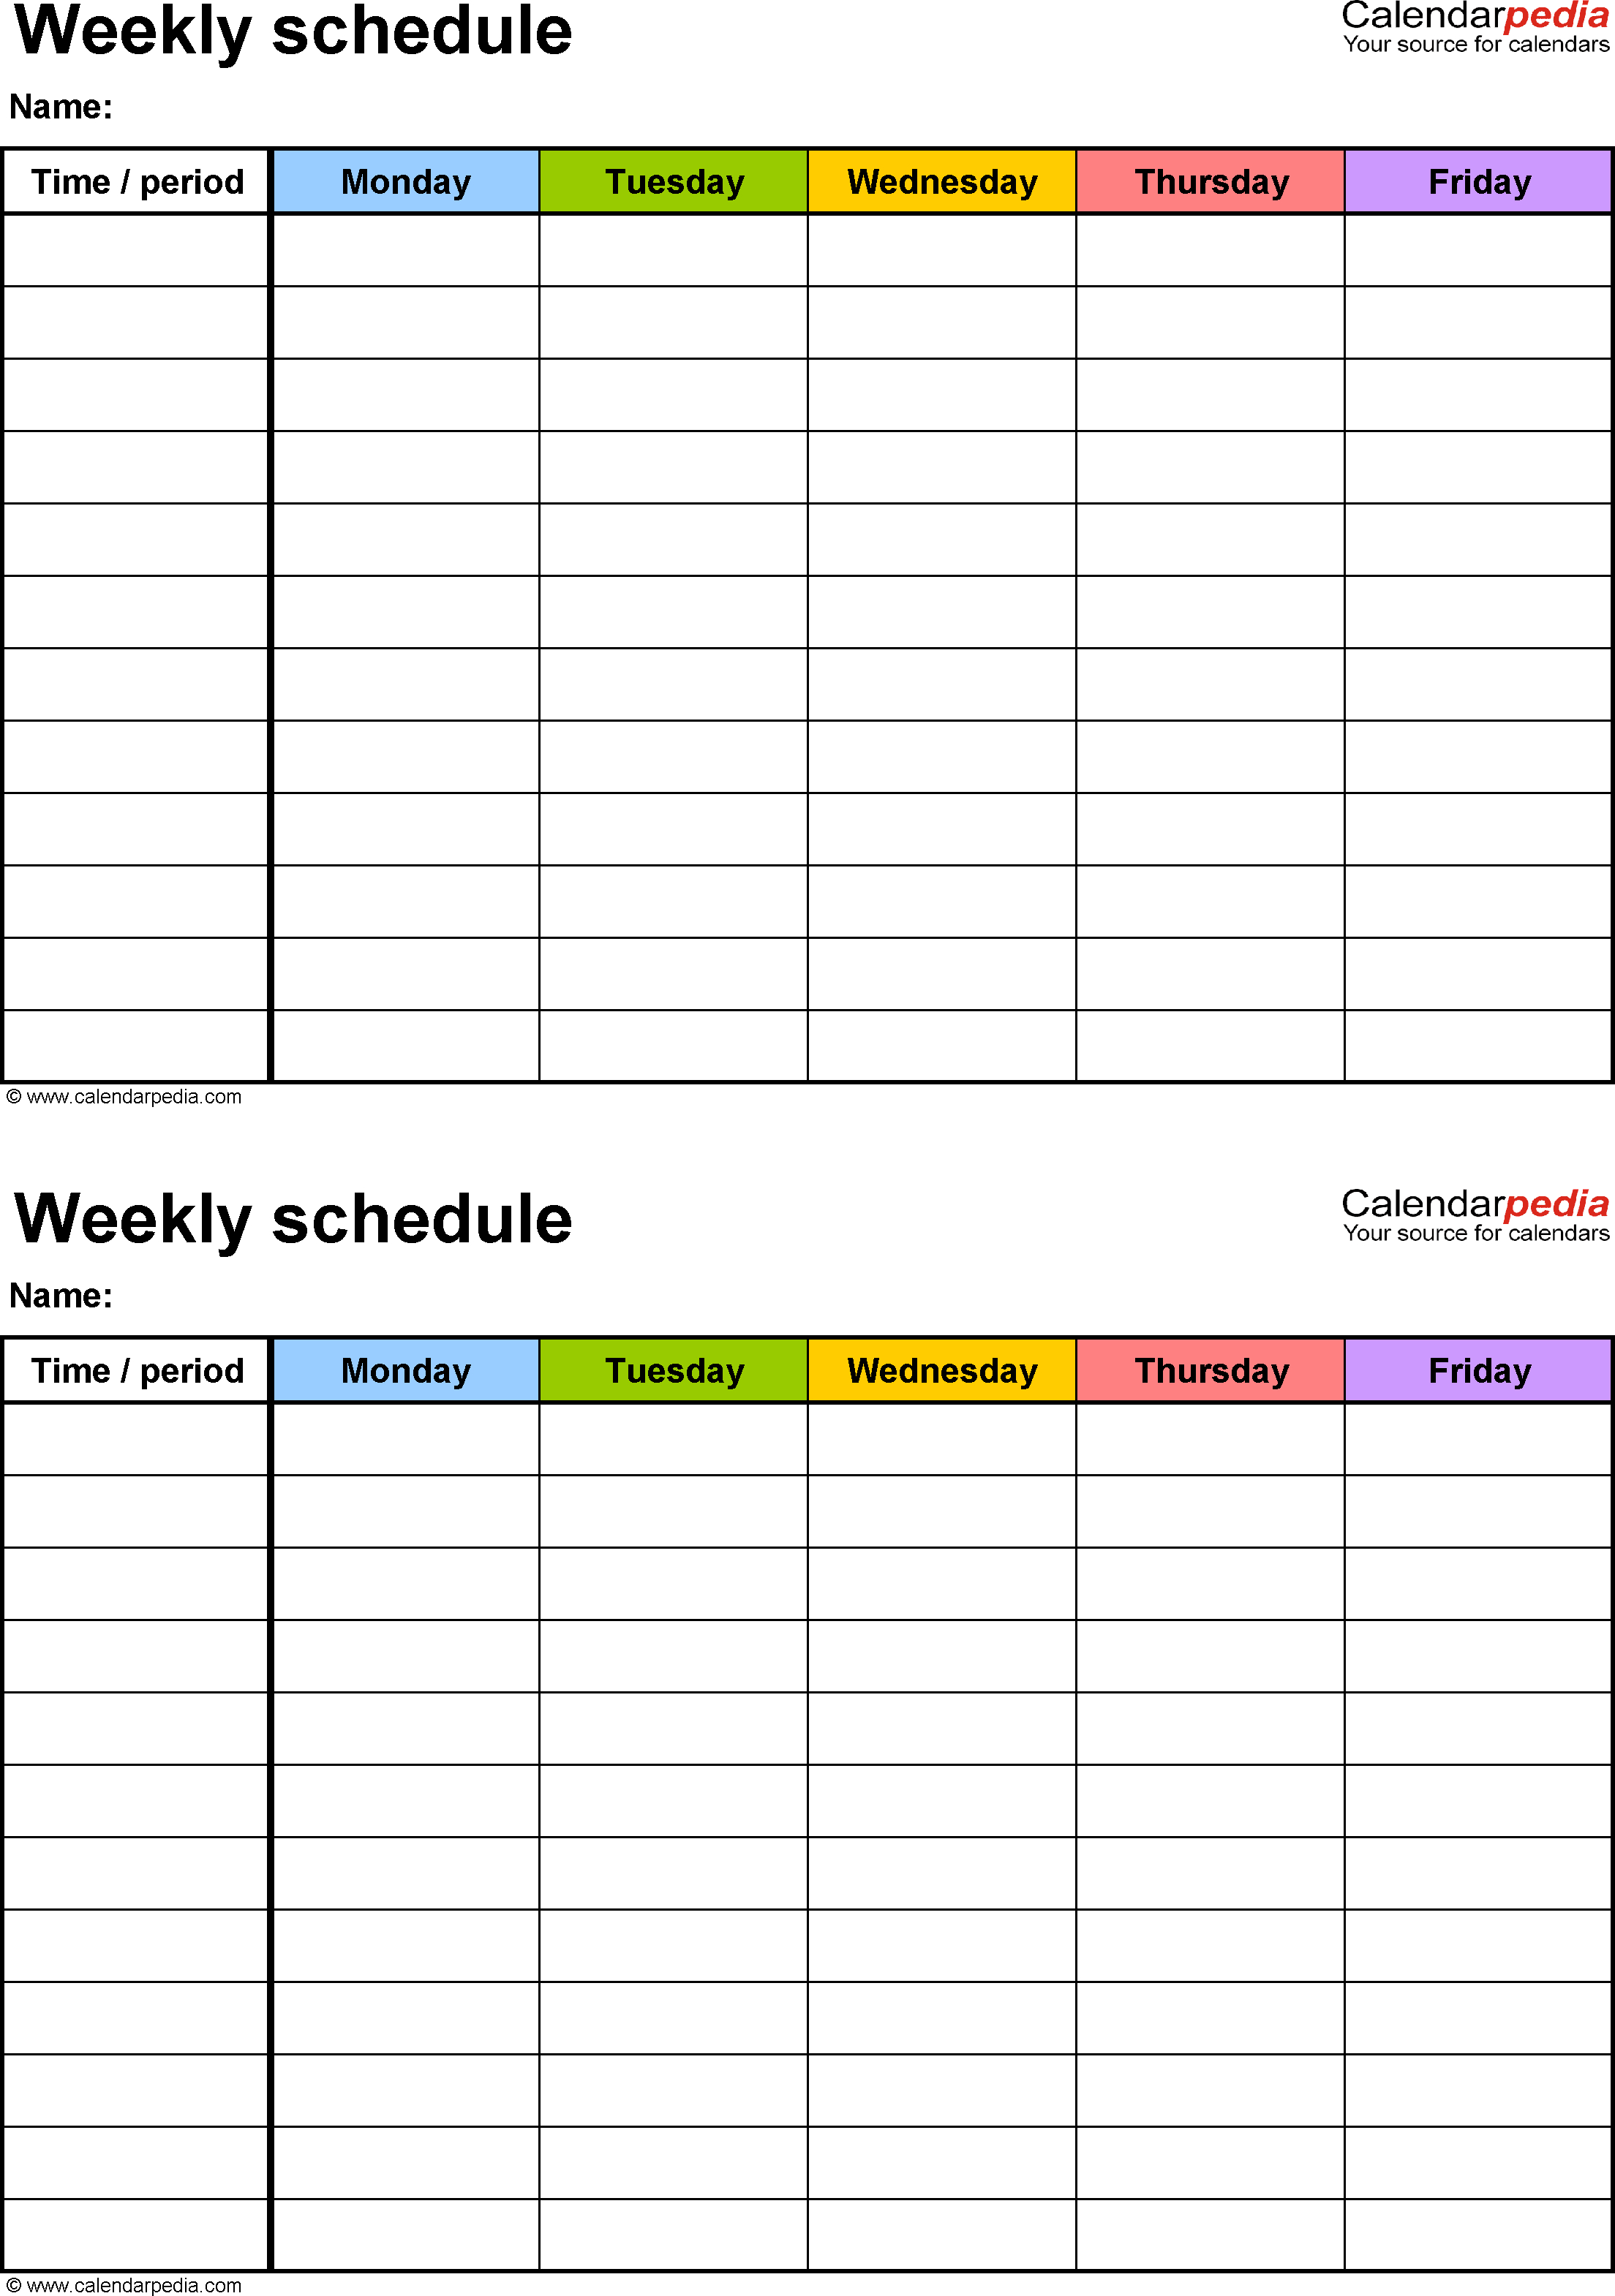 Free Weekly Schedule Templates For Pdf - 18 Templates - Free Printable Weekly Schedule